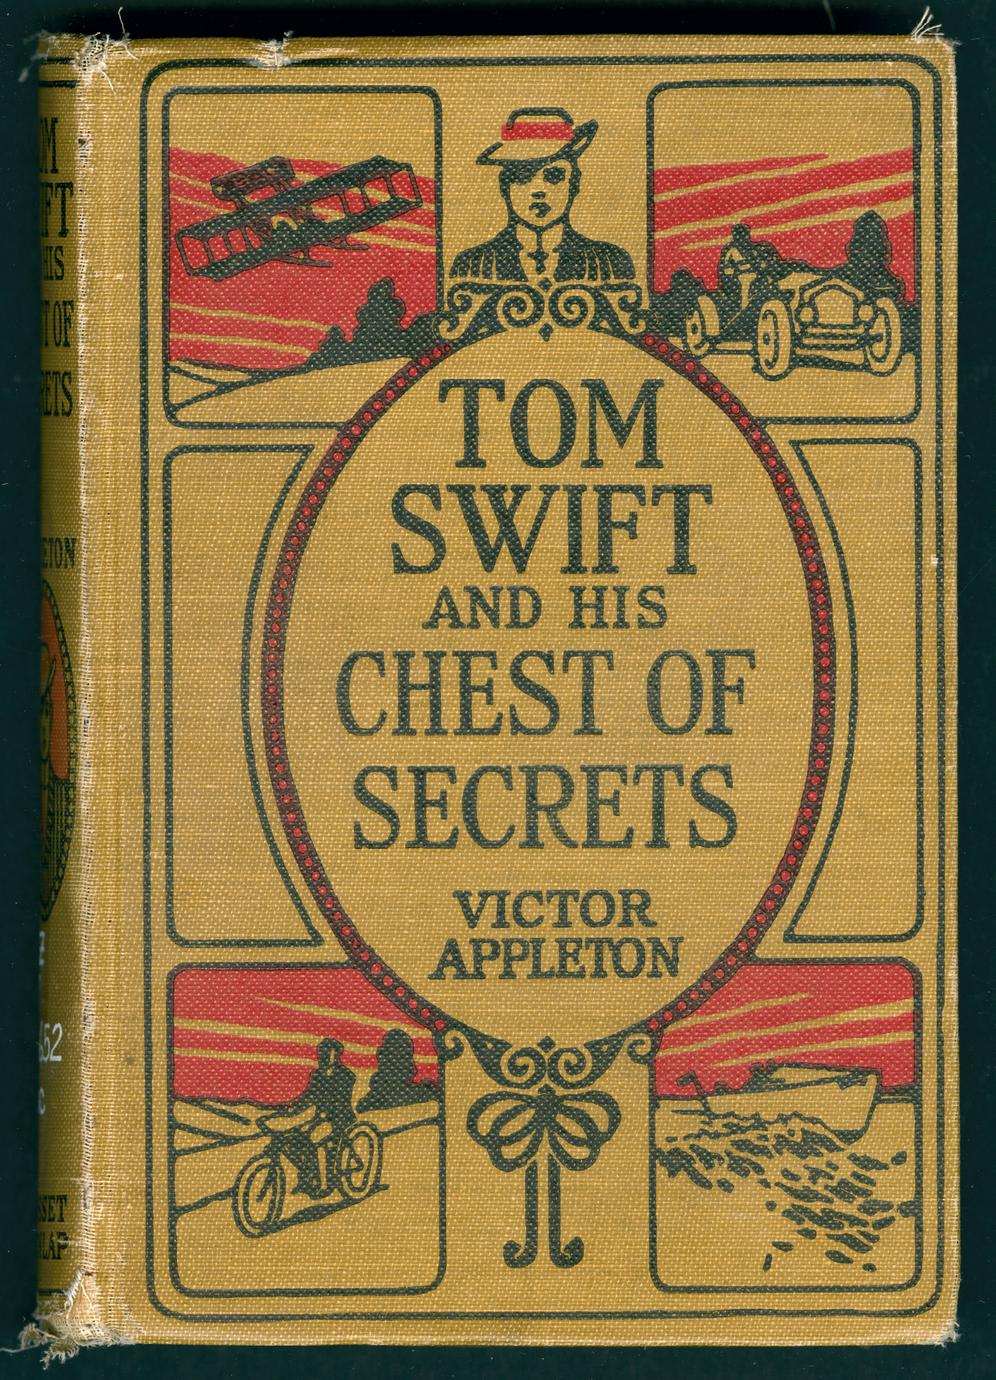 Tom Swift and his chest of secrets (1 of 2)